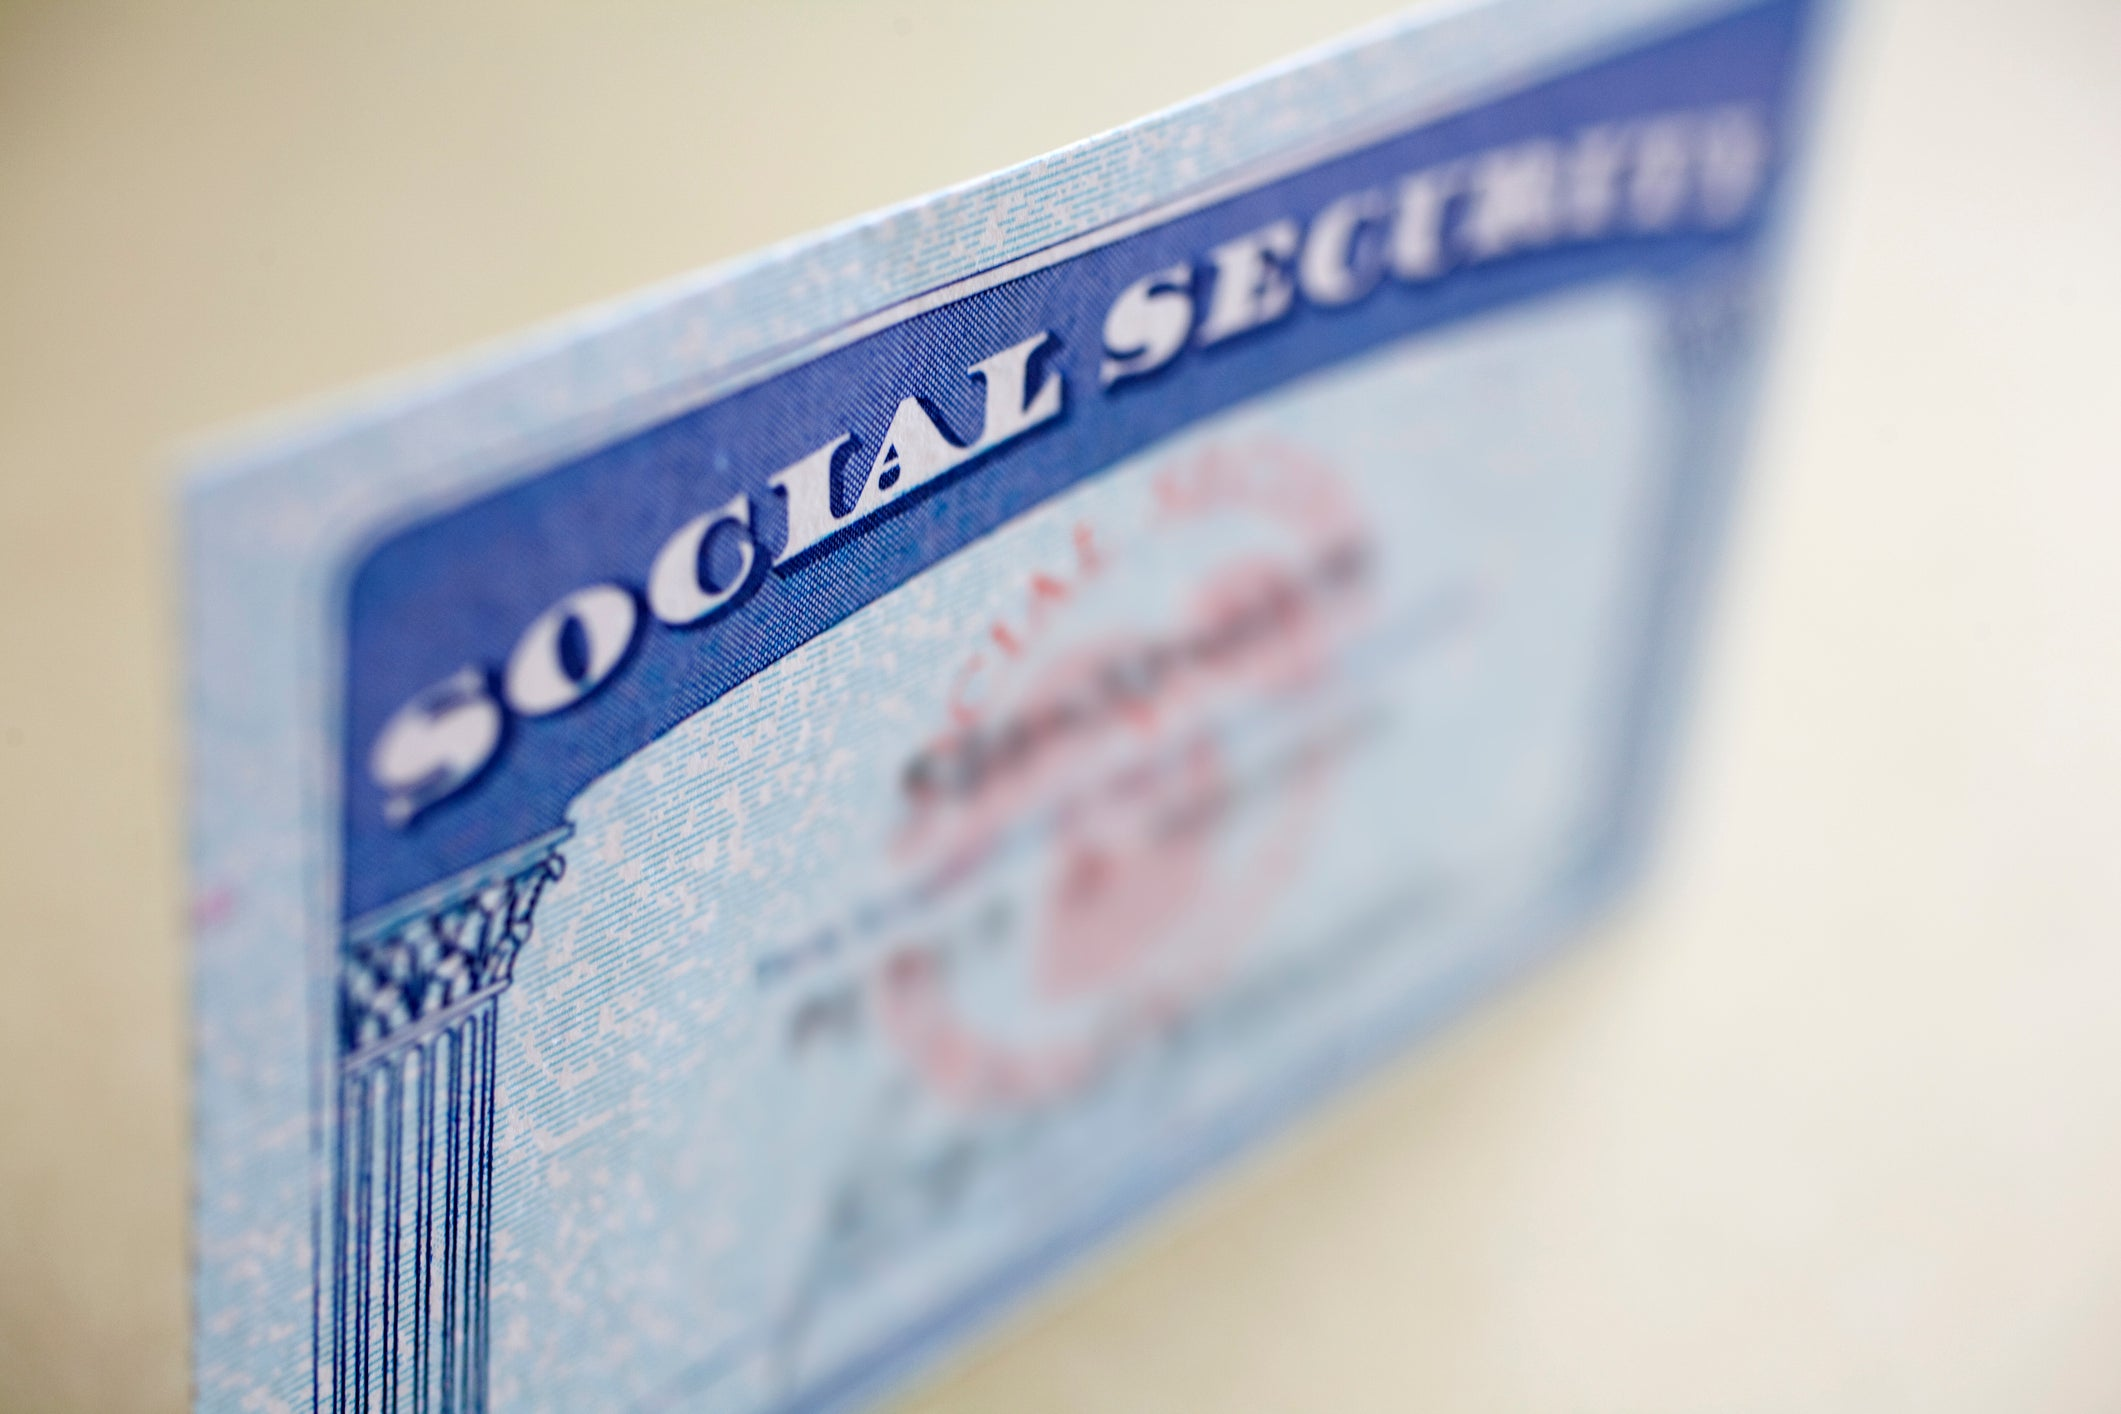 A Social Security card standing up on a table, with the name and number of the cardholder blurred out.